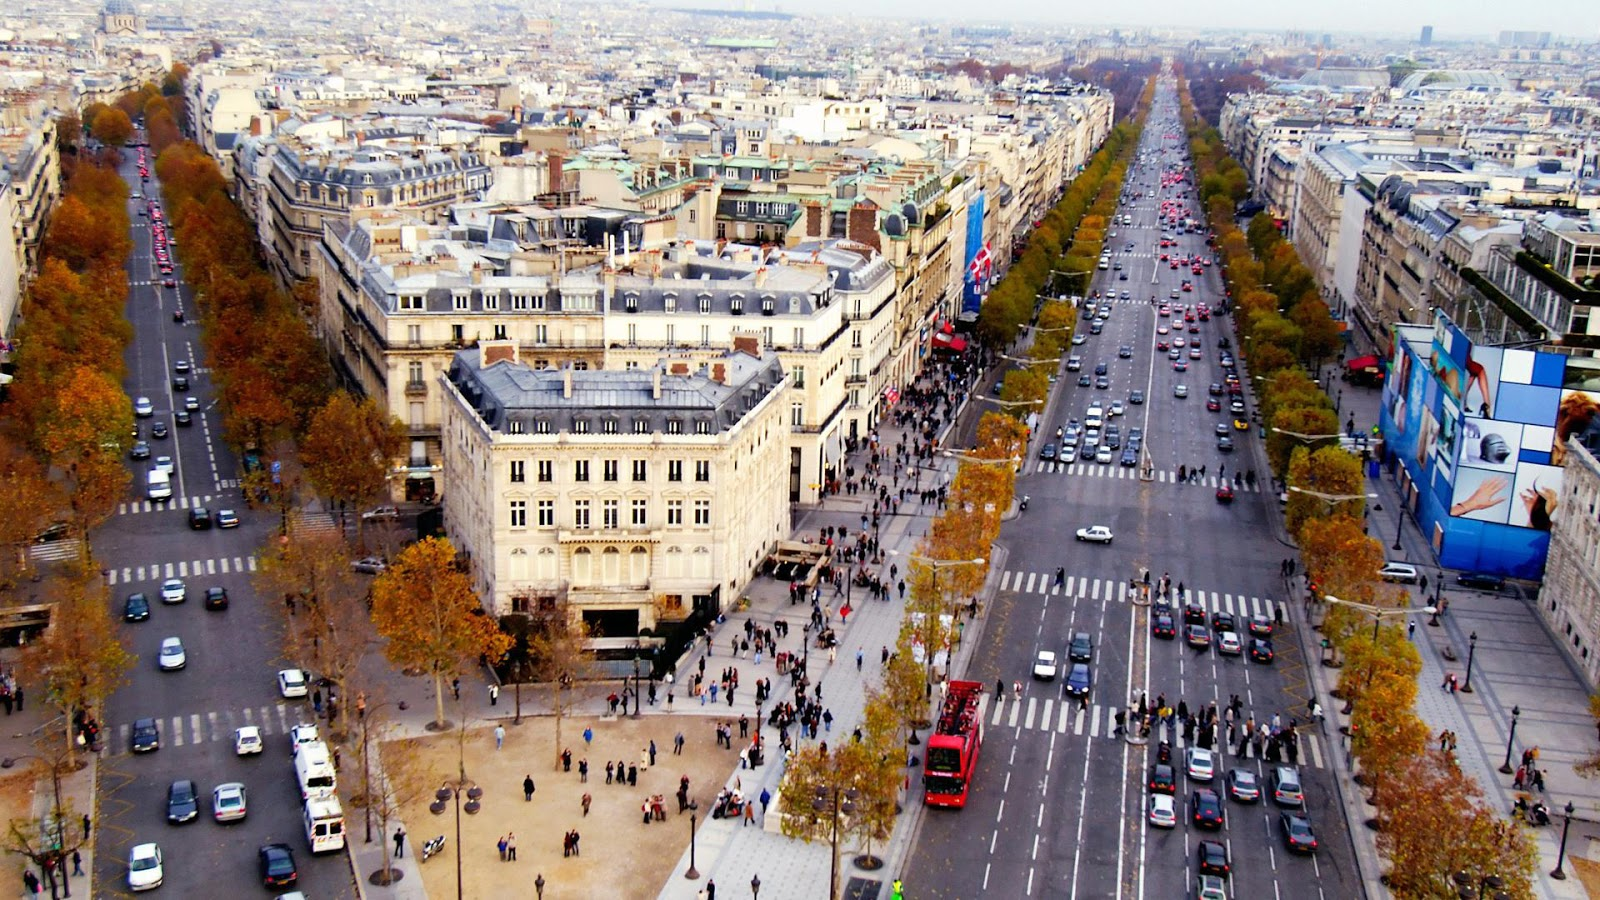 10 Best Cities To Meet Celebrities - Paris, France